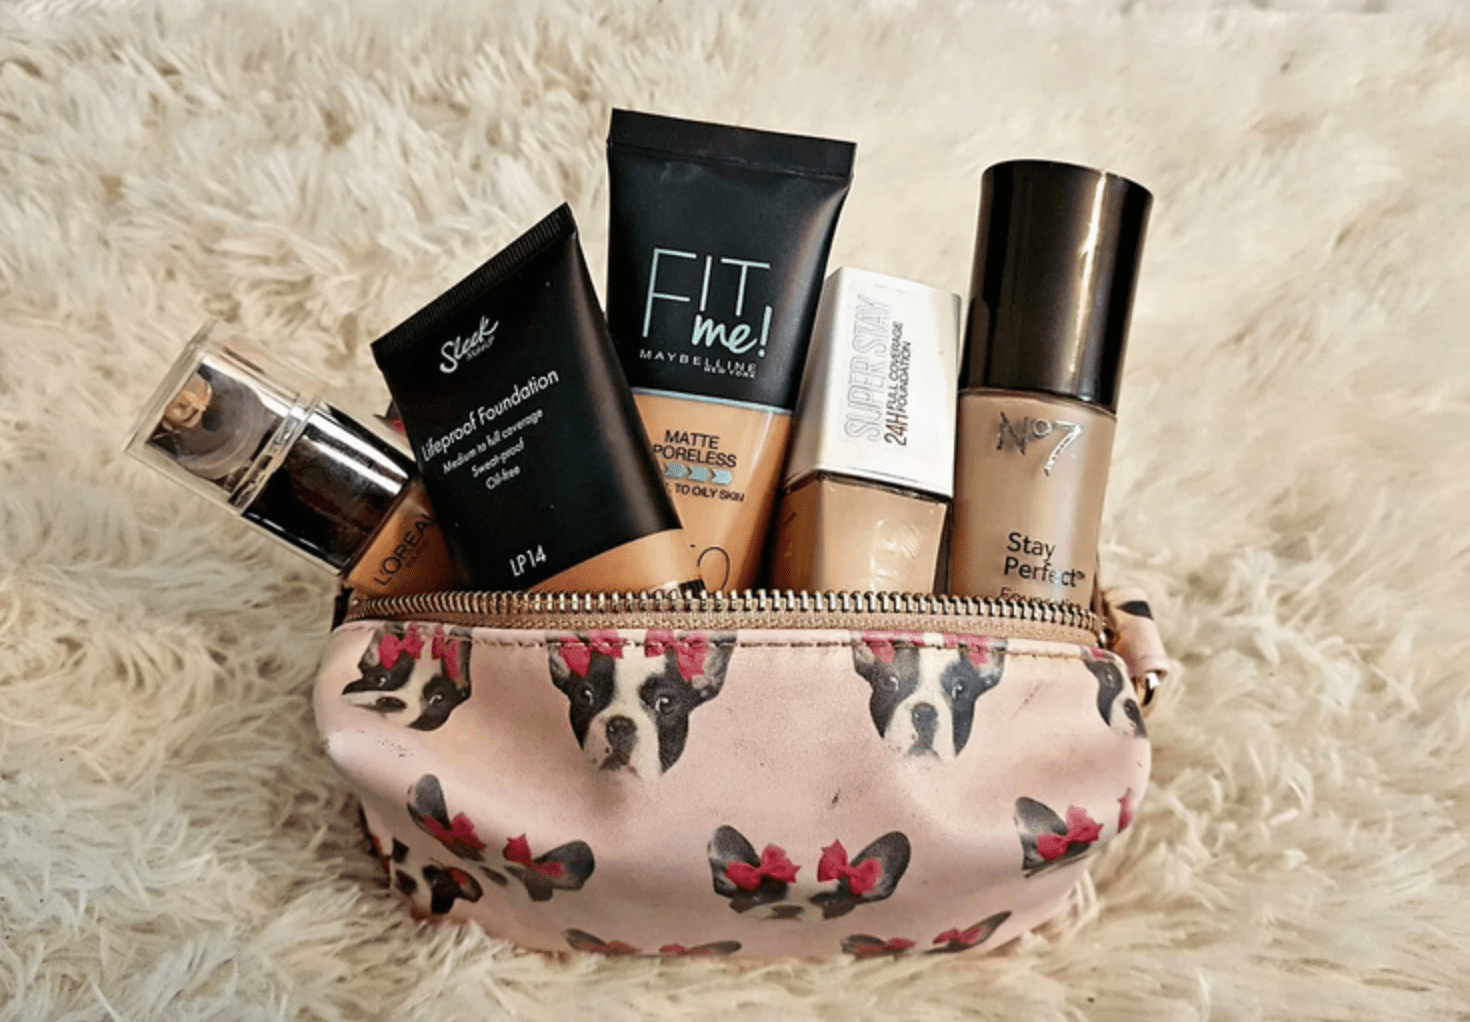 Liquid foundations pappearing out of an opened, pink makeup bag